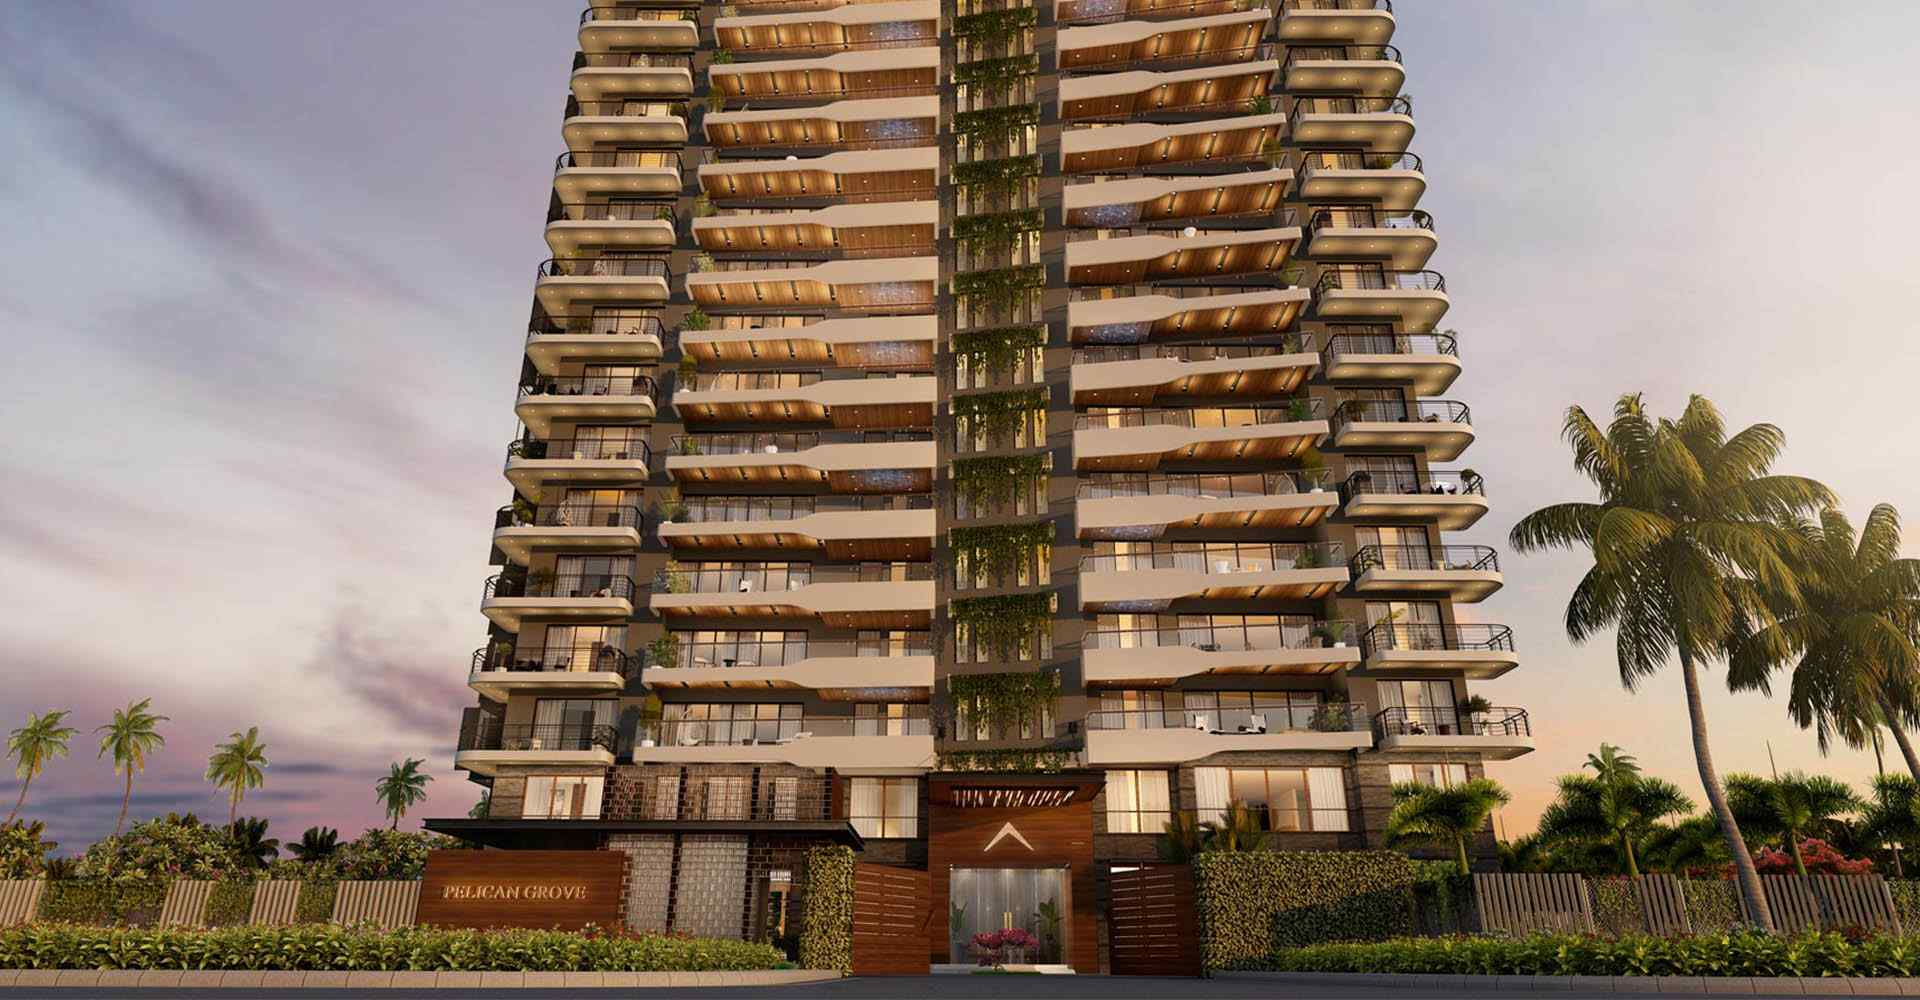 Maia Pelican Grove | Residential apartments for sale in bangalore